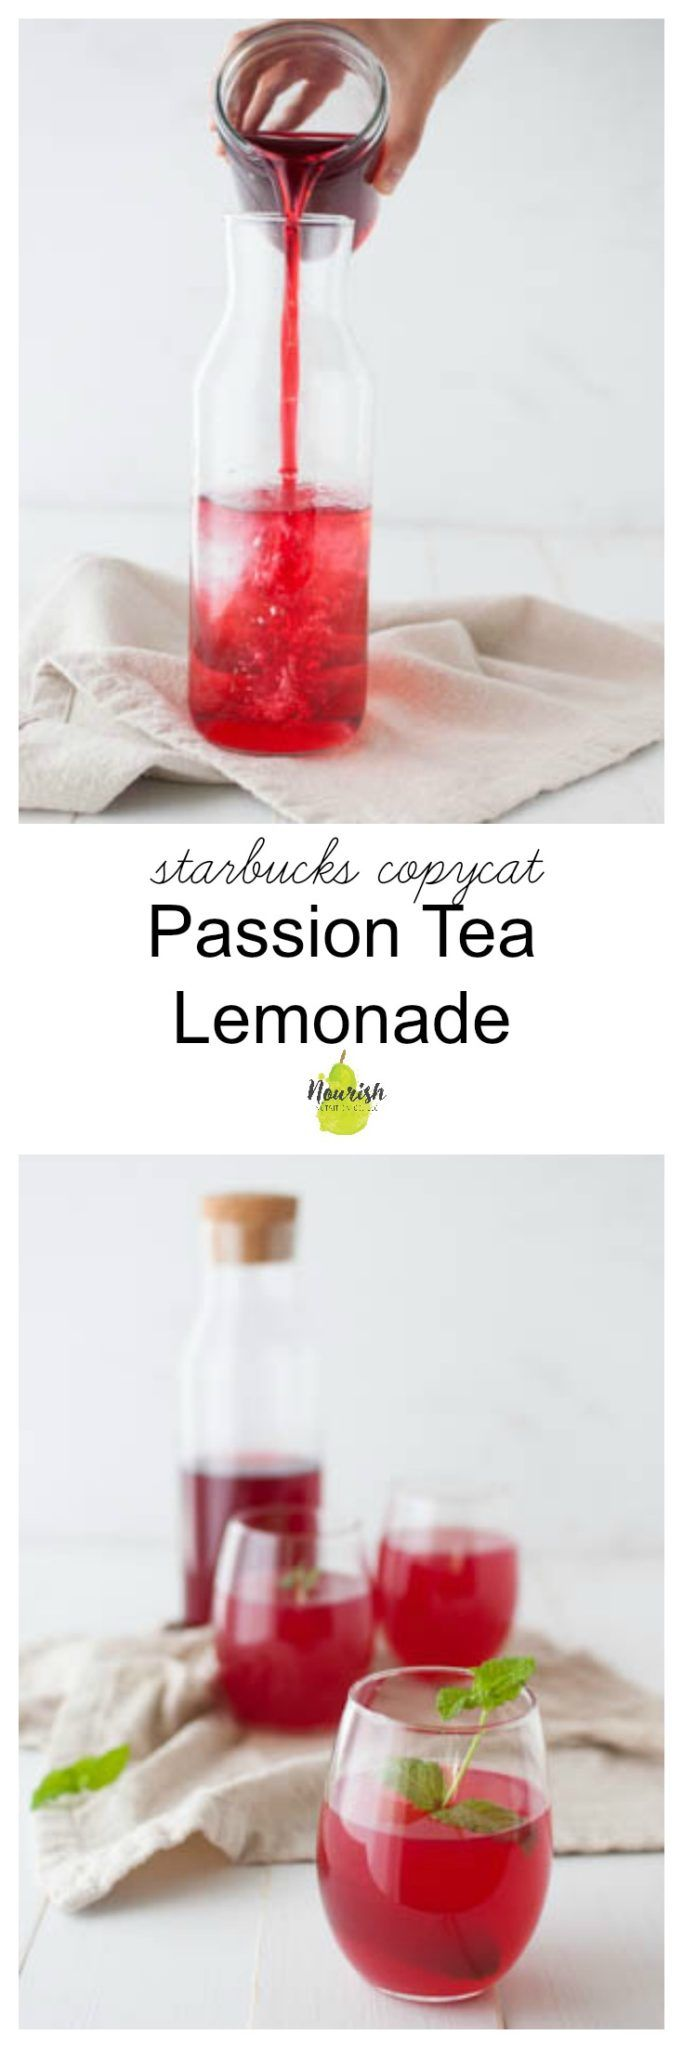 How to make your own Starbucks copycat passion tea lemonade | cool down this summer with this refreshing drink | DIY | at home | tazo via @nourishnutrico